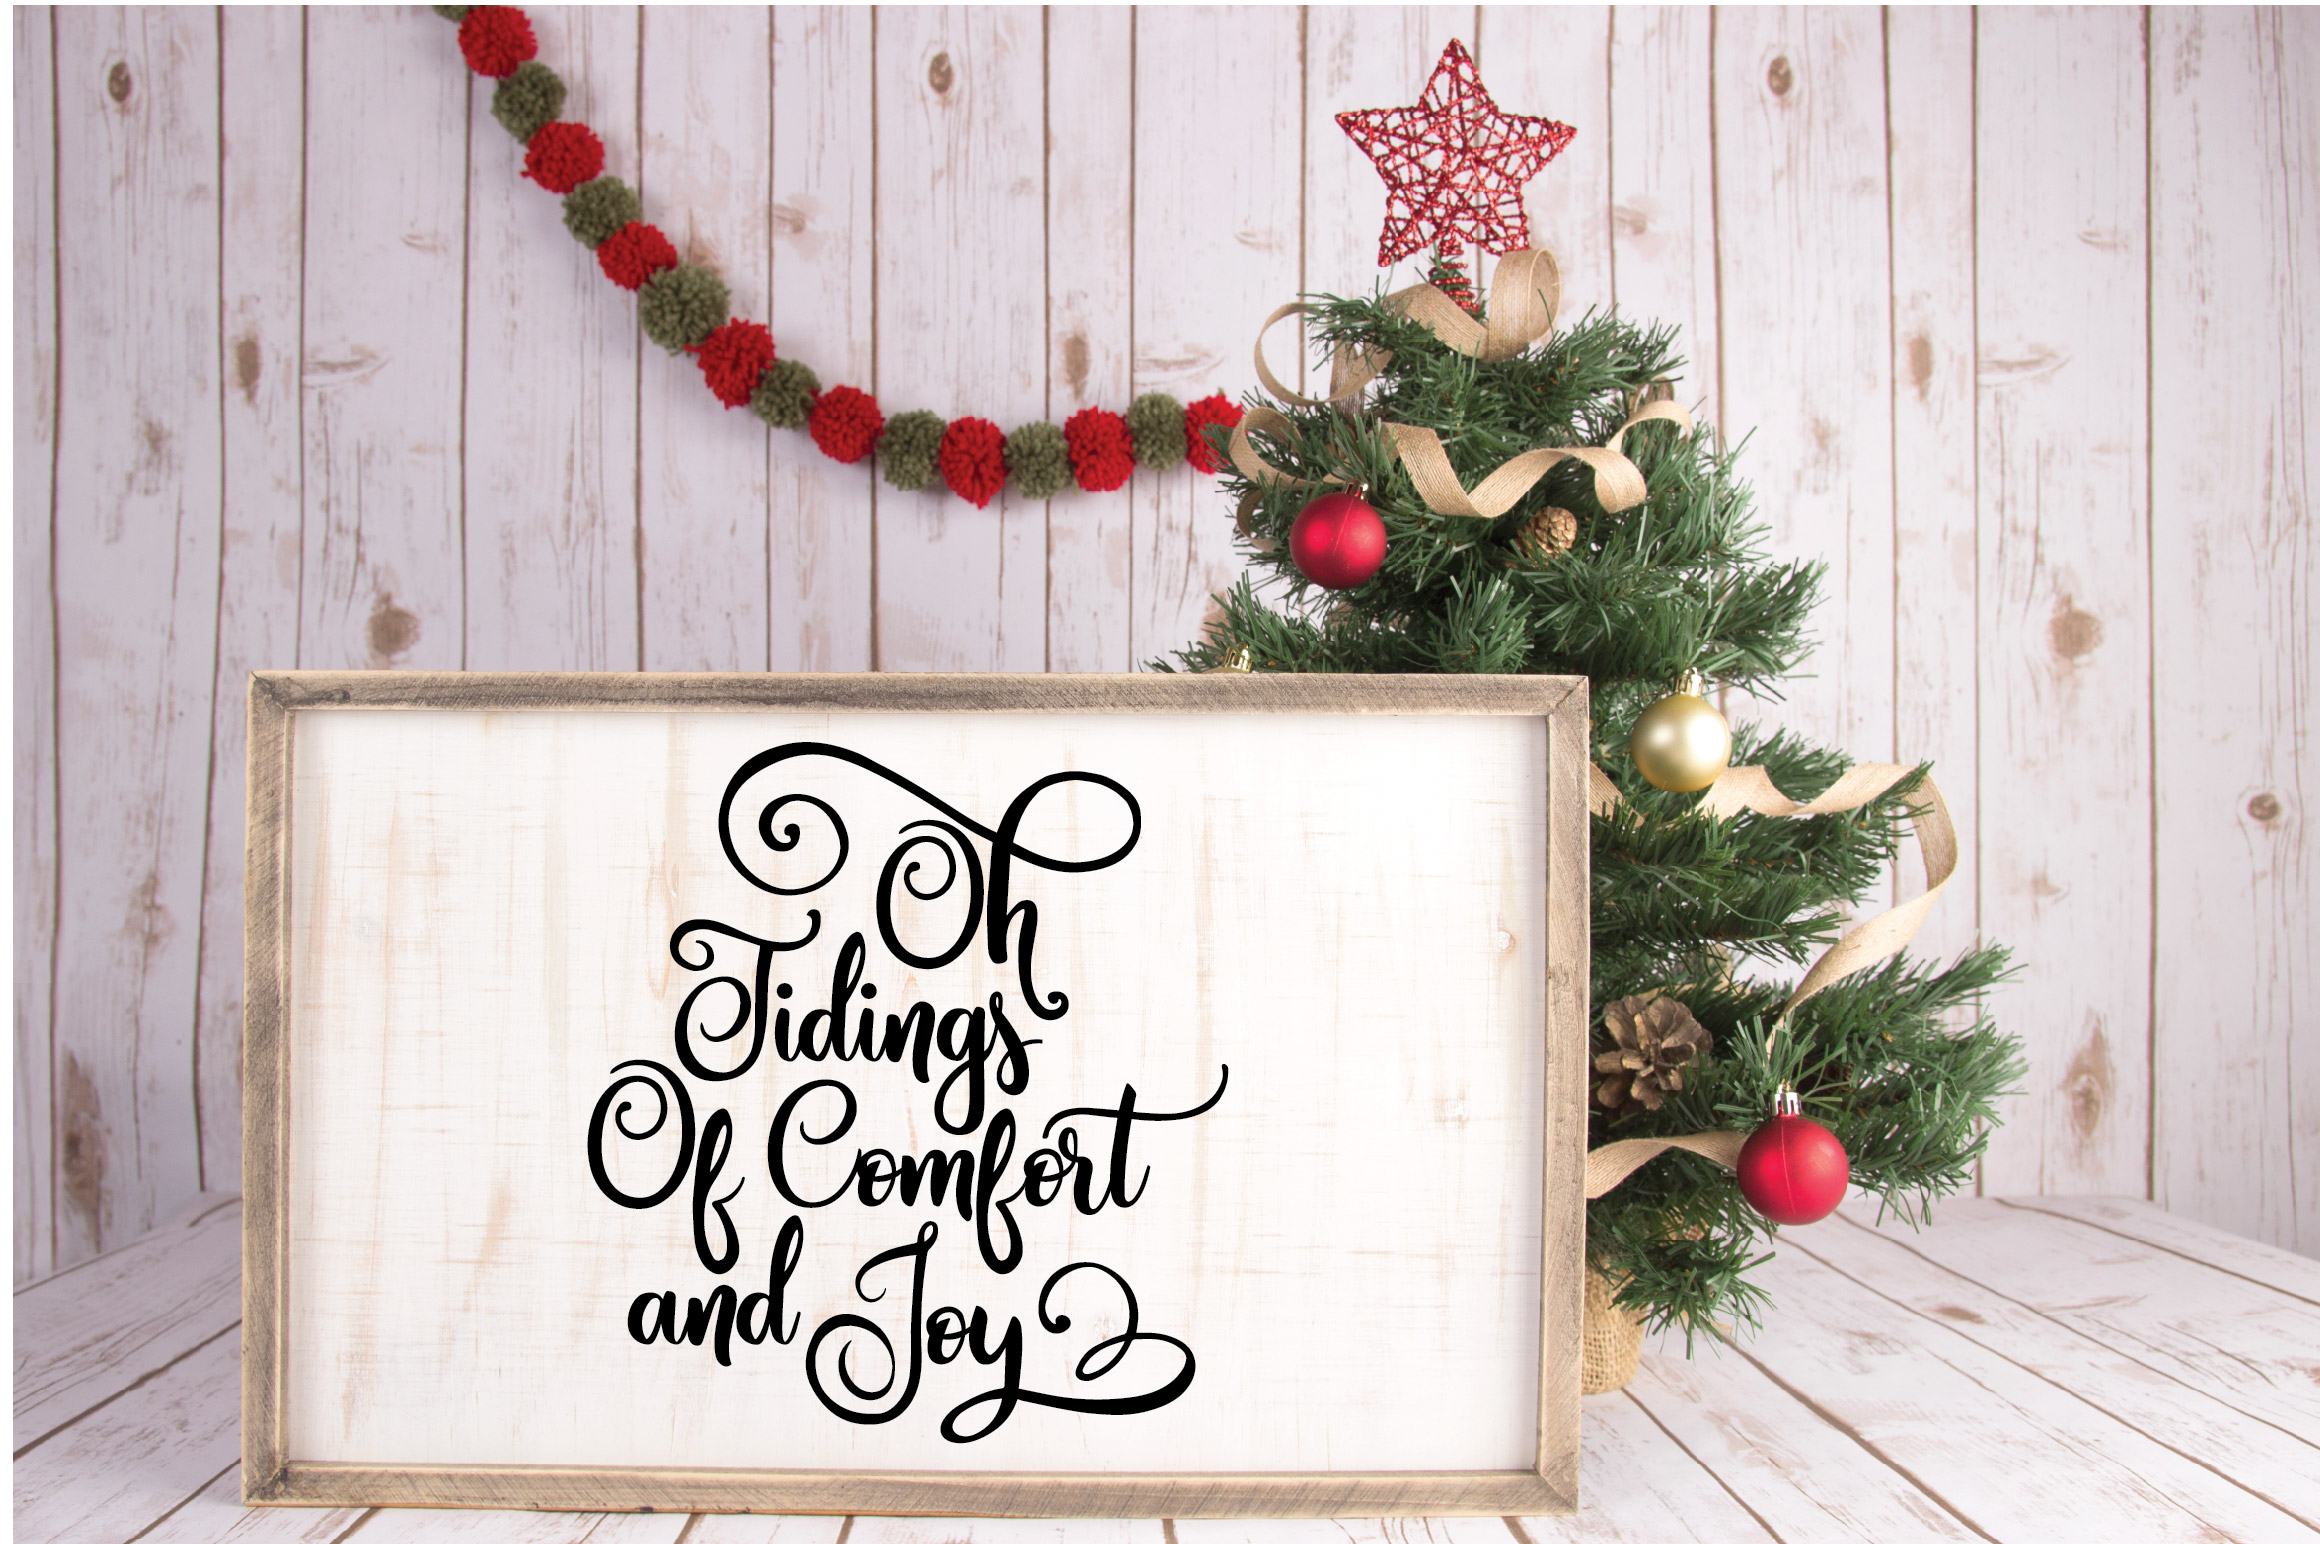 Oh Tidings of Comfort and Joy - Christmas SVG Cut File - DXF